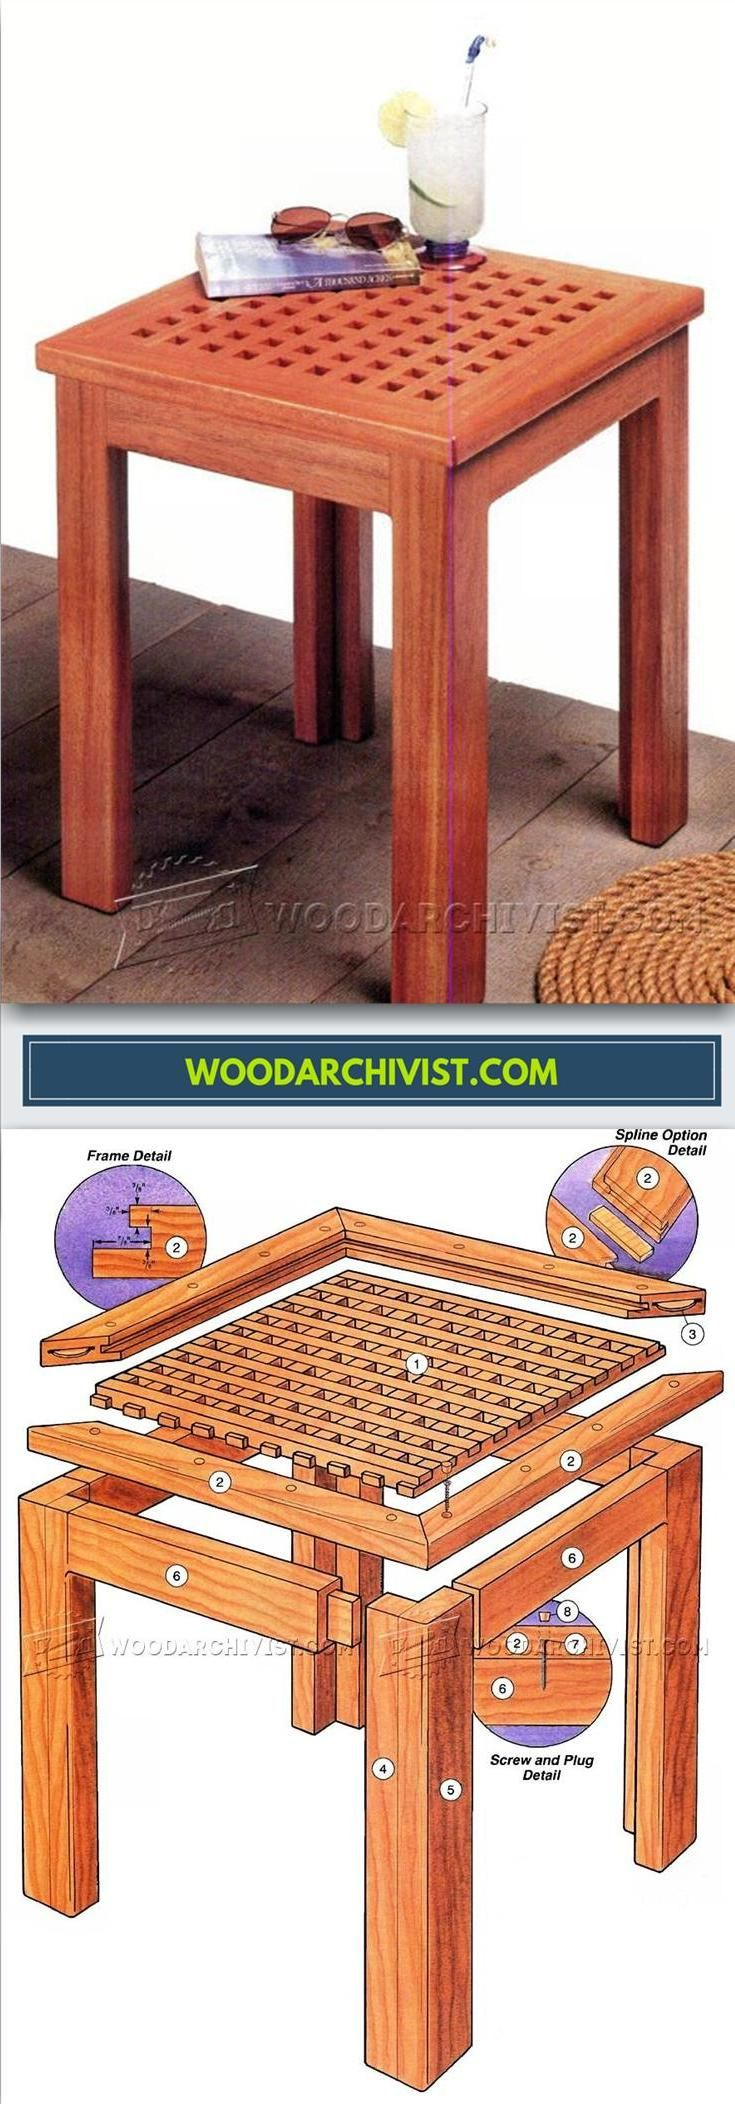 Deck Table Plans - Outdoor Furniture Plans and Projects | WoodArchivist.com